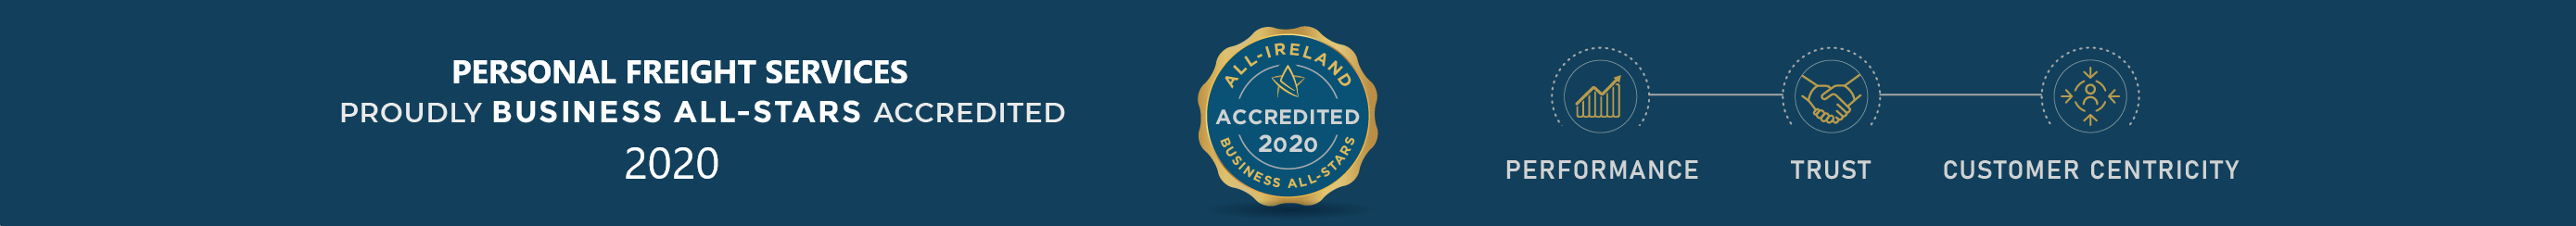 All Star Business Accreditation